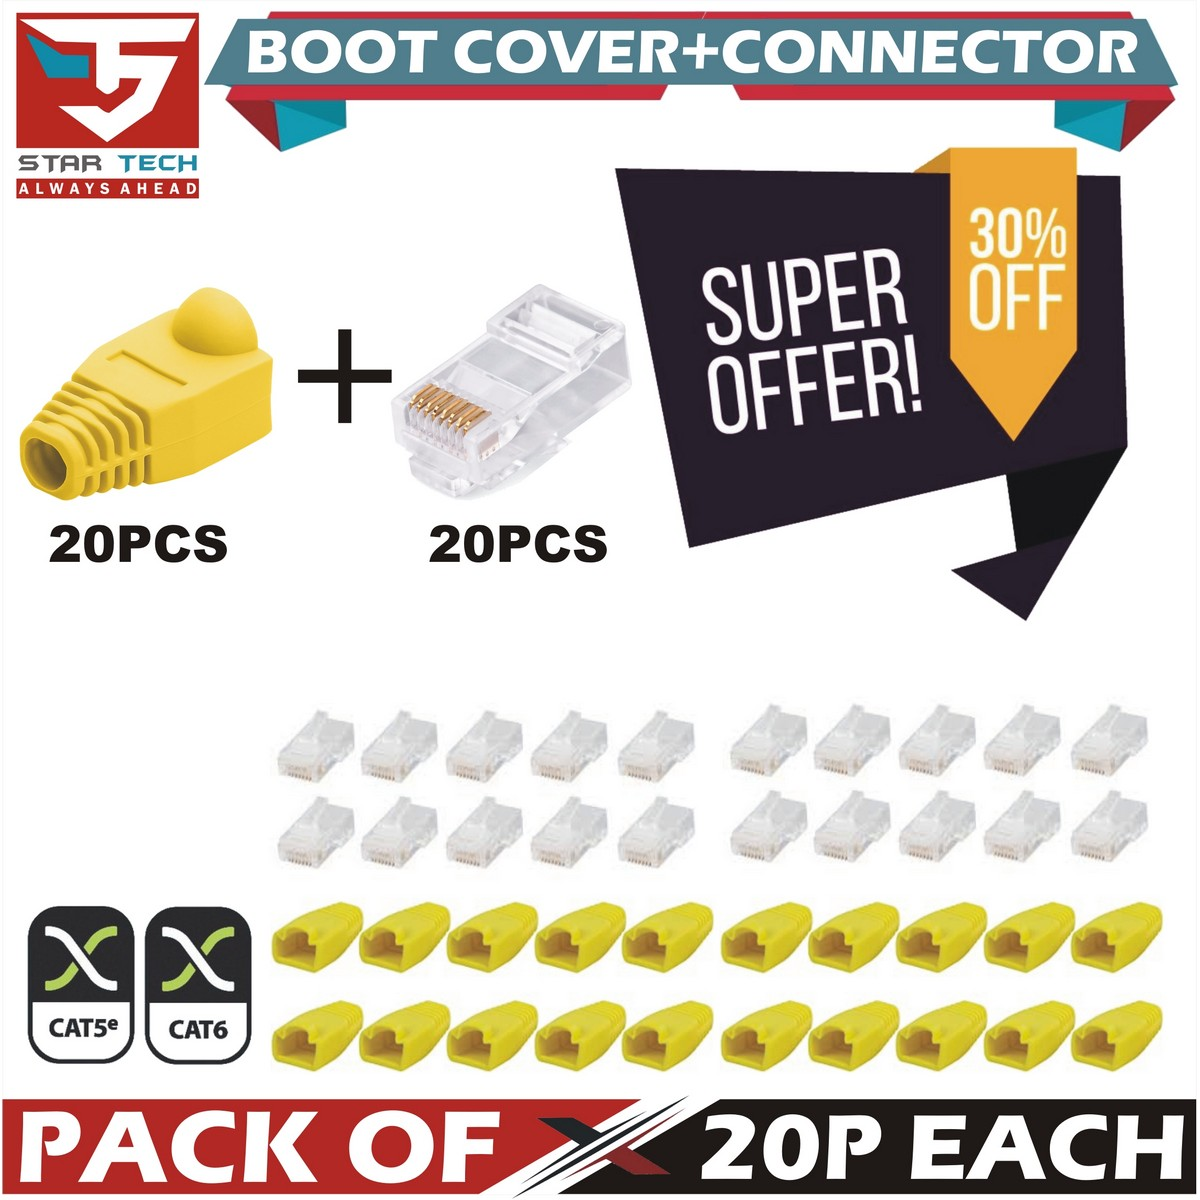 20X RJ45 Connector + Strain Relief Rubber Boots Cover Network LAN Ethernet Patch Cable Plug Caps